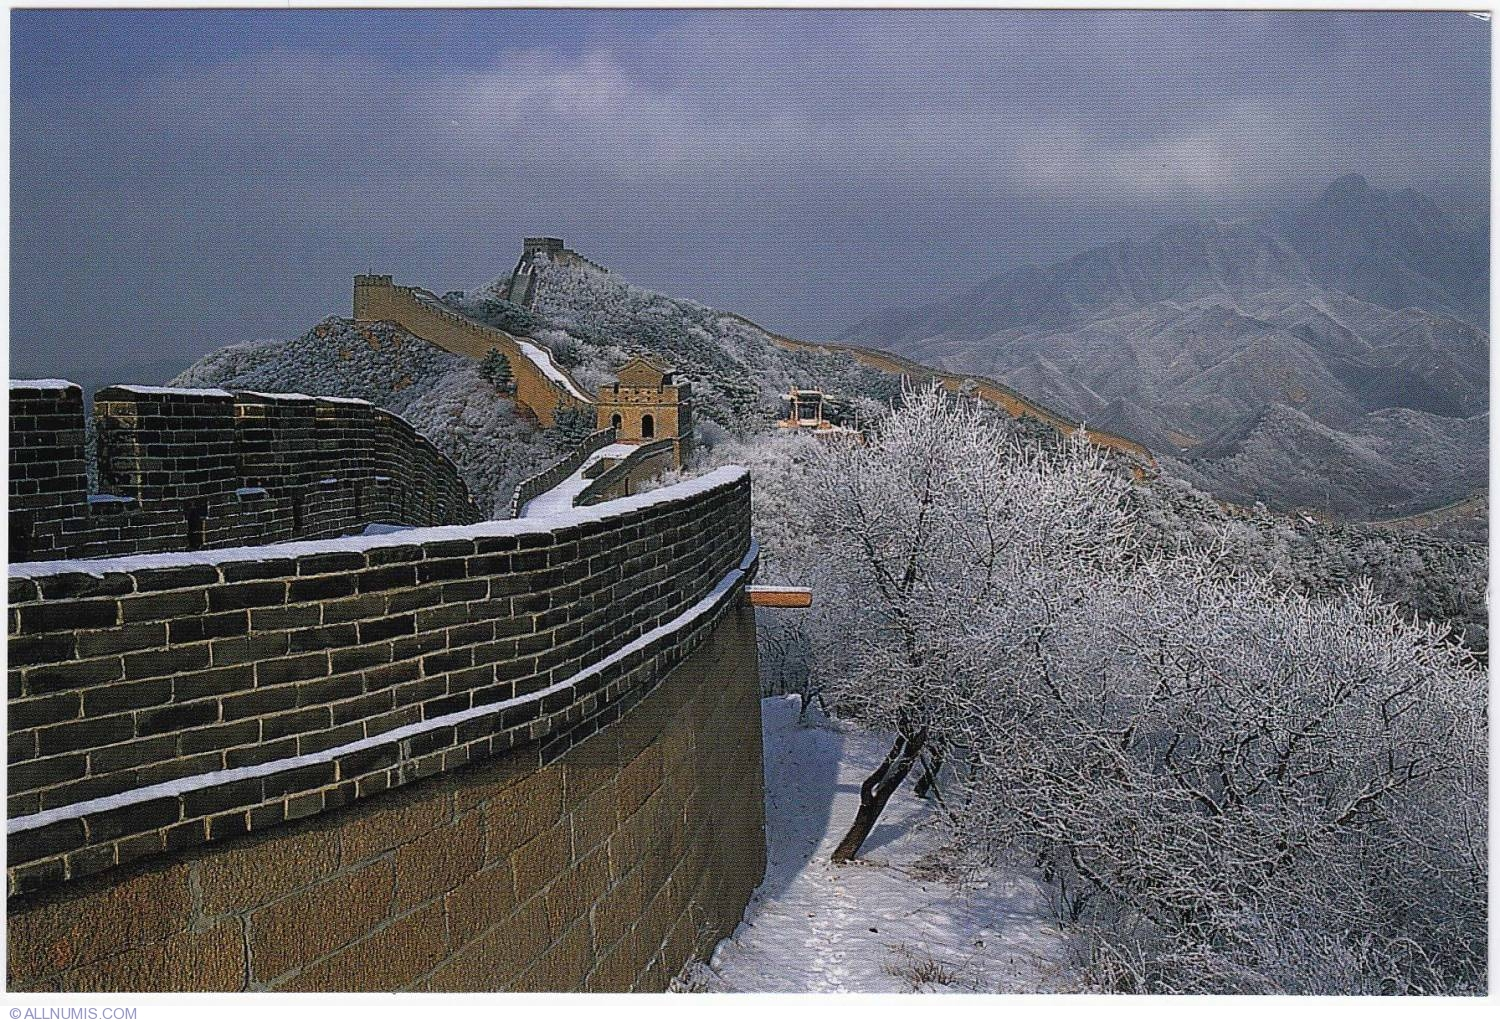 a description of the great wall of china as a wall that was built during the chin dynasty 10072018 the main great wall of china stretches approximately 5,500 miles along the southern edge of inner mongolia explorer experts state that it takes 18 months to walk its entire length it was constructed during the ming dynasty in the 14th and 15th century, and is sometimes called the ming wall.